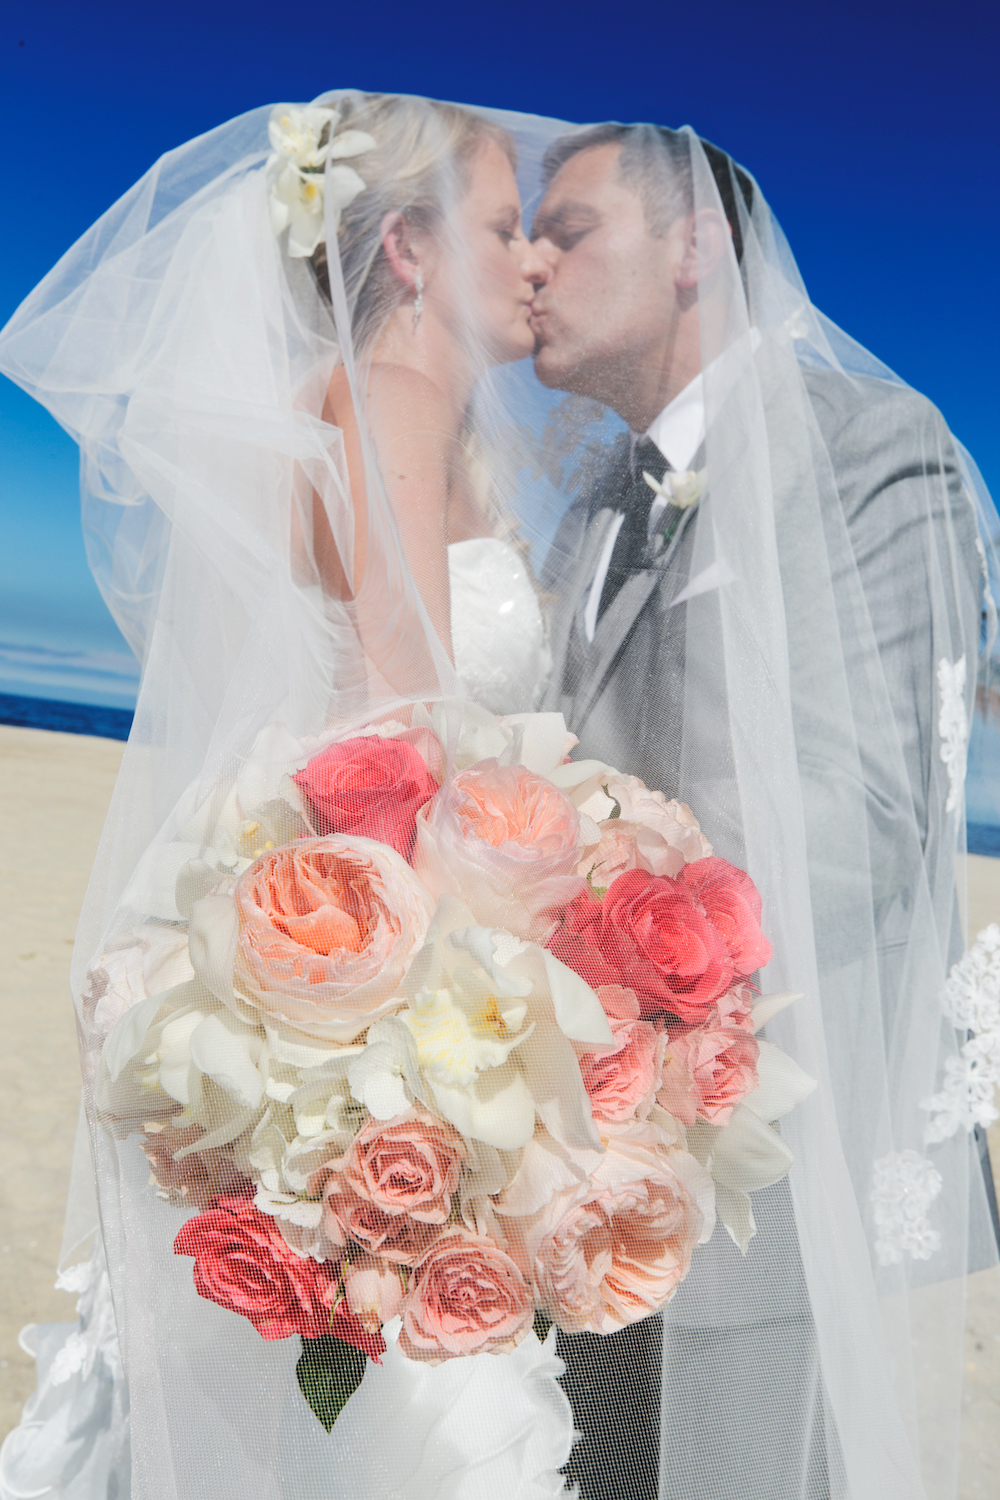 kimberley&charles-kissing-under-veil-on-beach-wedding-photography-nj